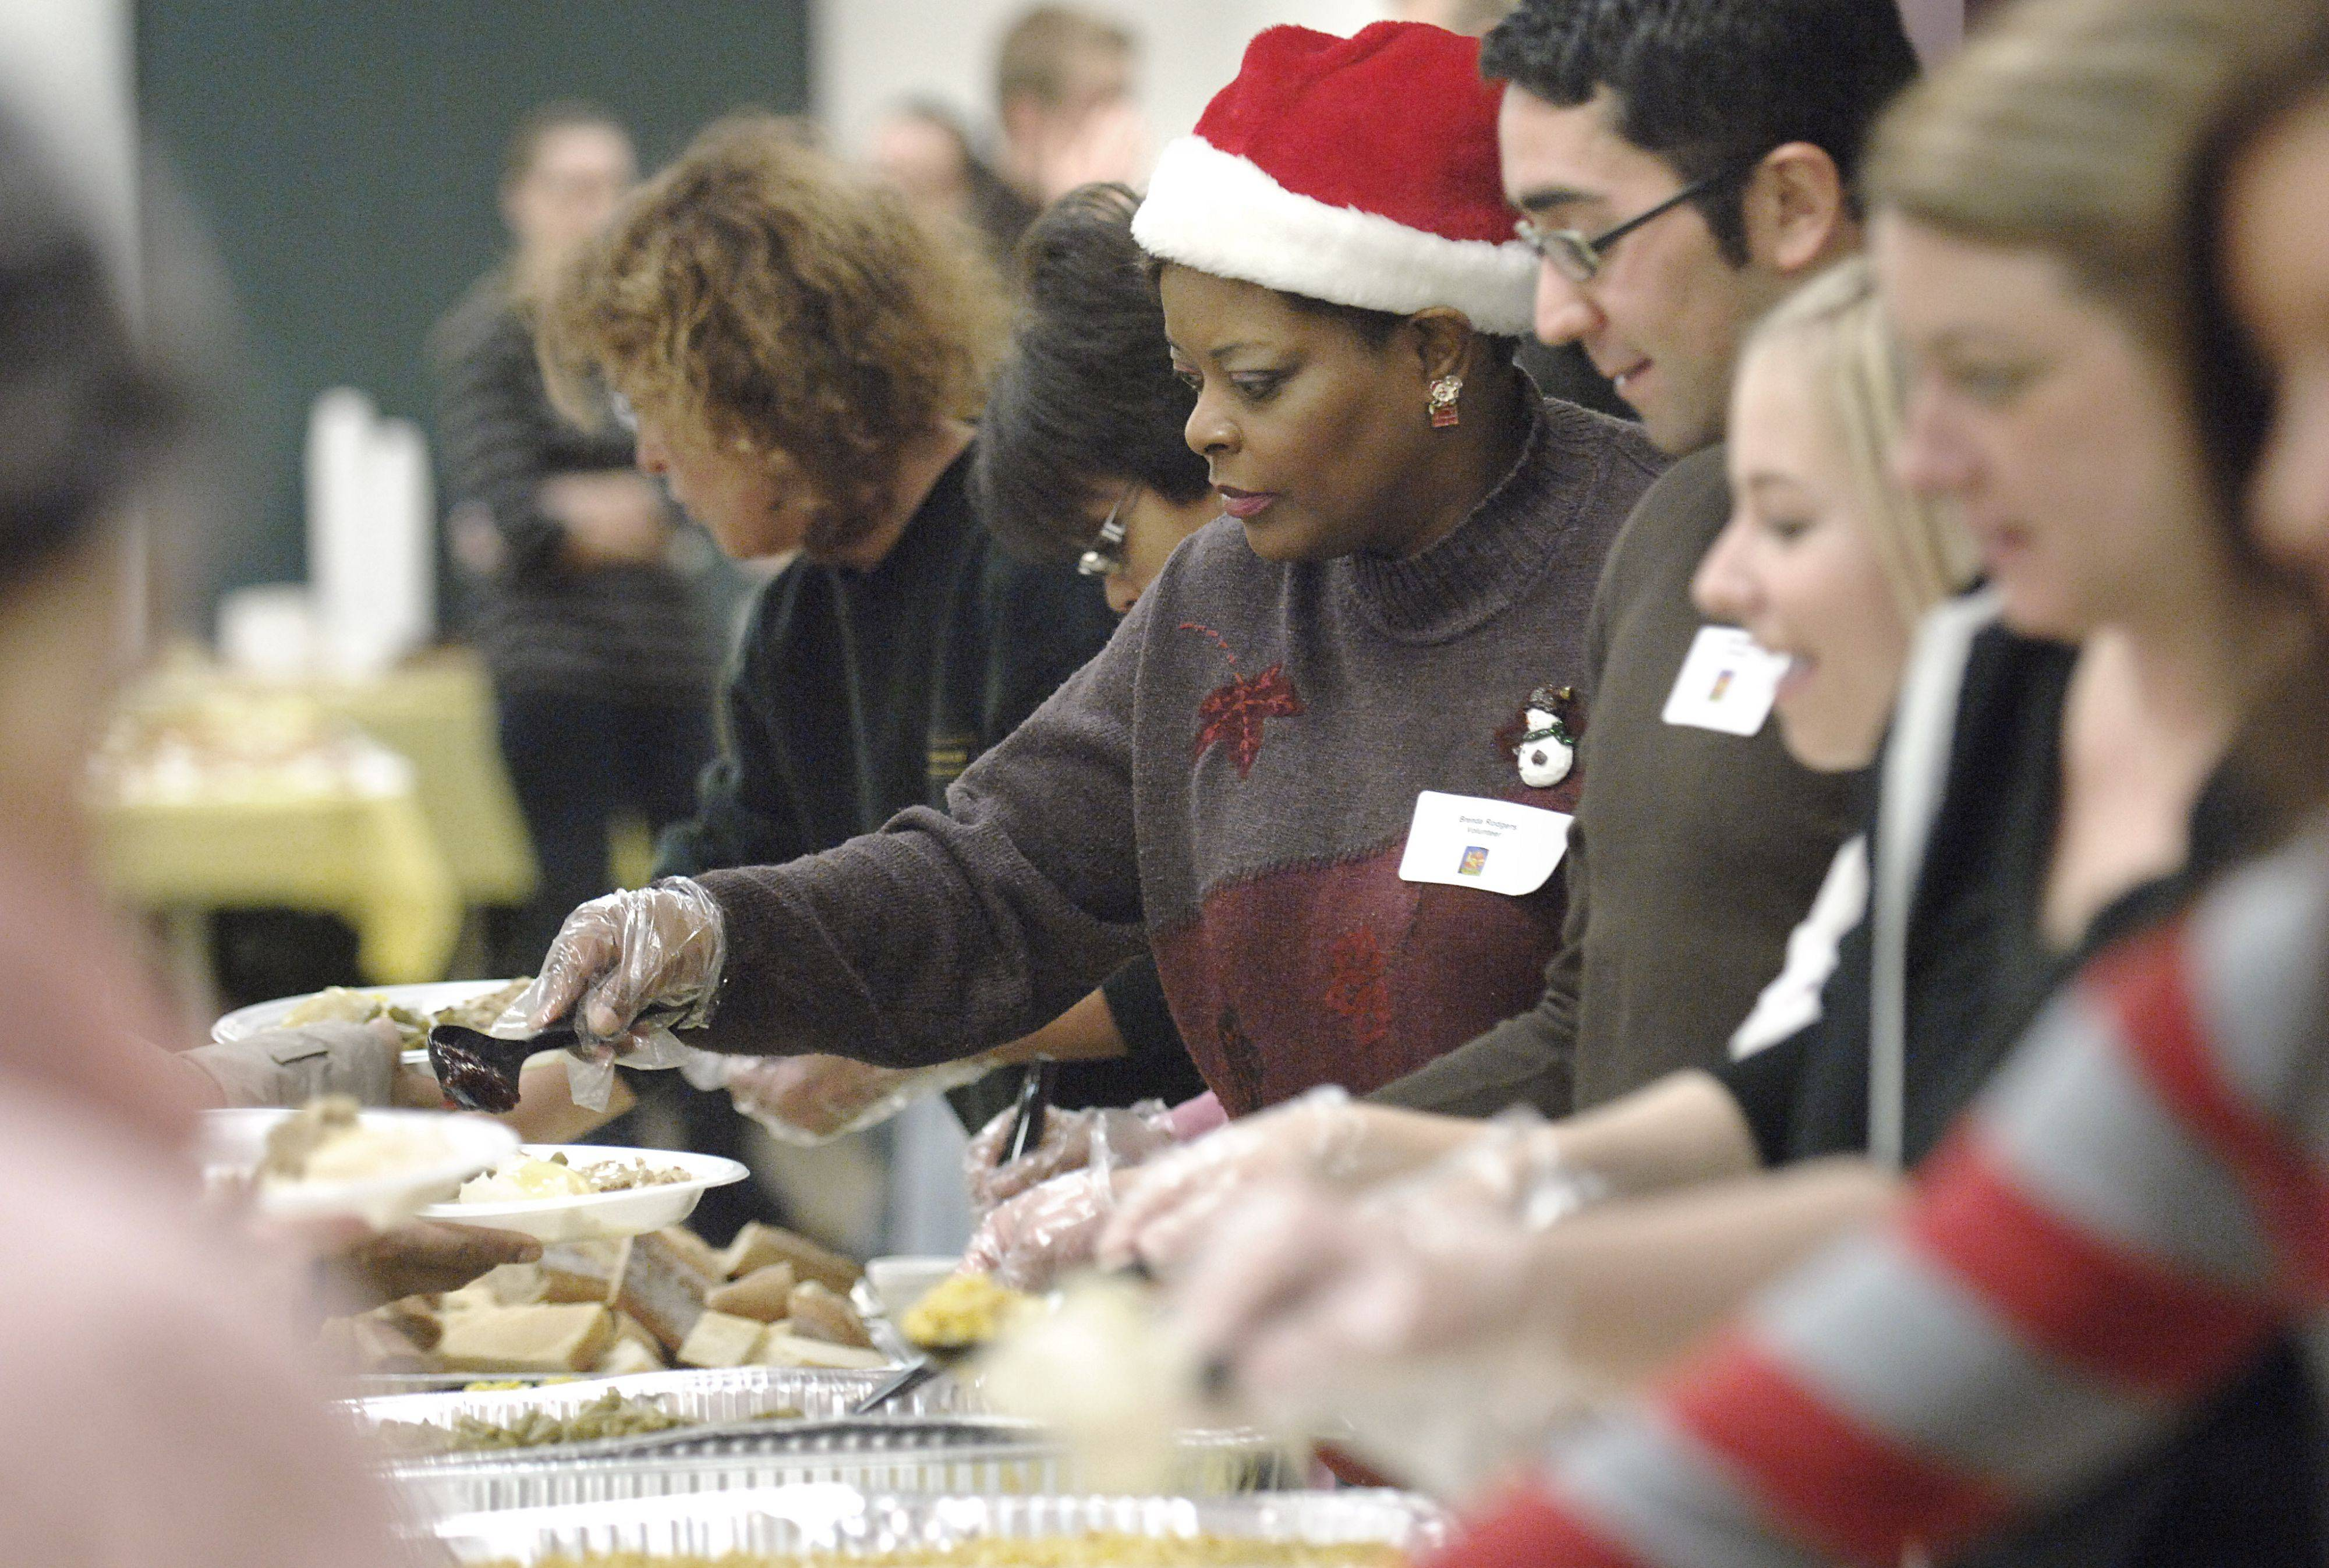 Brenda Rodgers of Elgin, wearing a Santa hat, serves food at the community Thanksgiving dinner at the Hemmens Cultural Center in Elgin on Thanksgiving Day. Sixty-five turkeys were prepared for the feast.